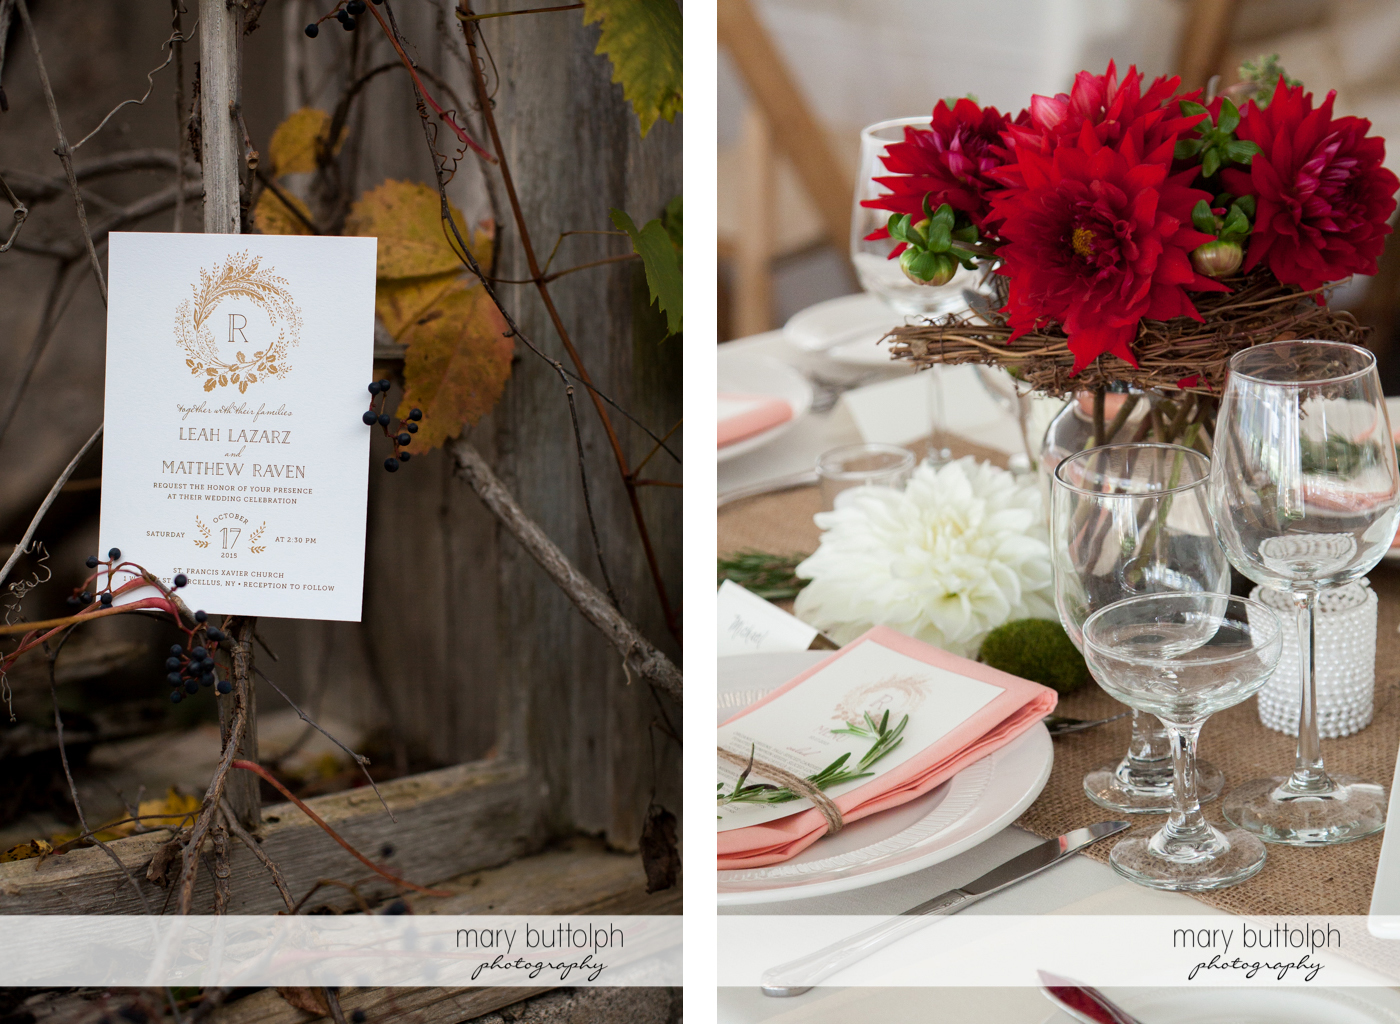 Wedding invitation and flowers brighten up the table at the Frog Pond Bed & Breakfast Wedding